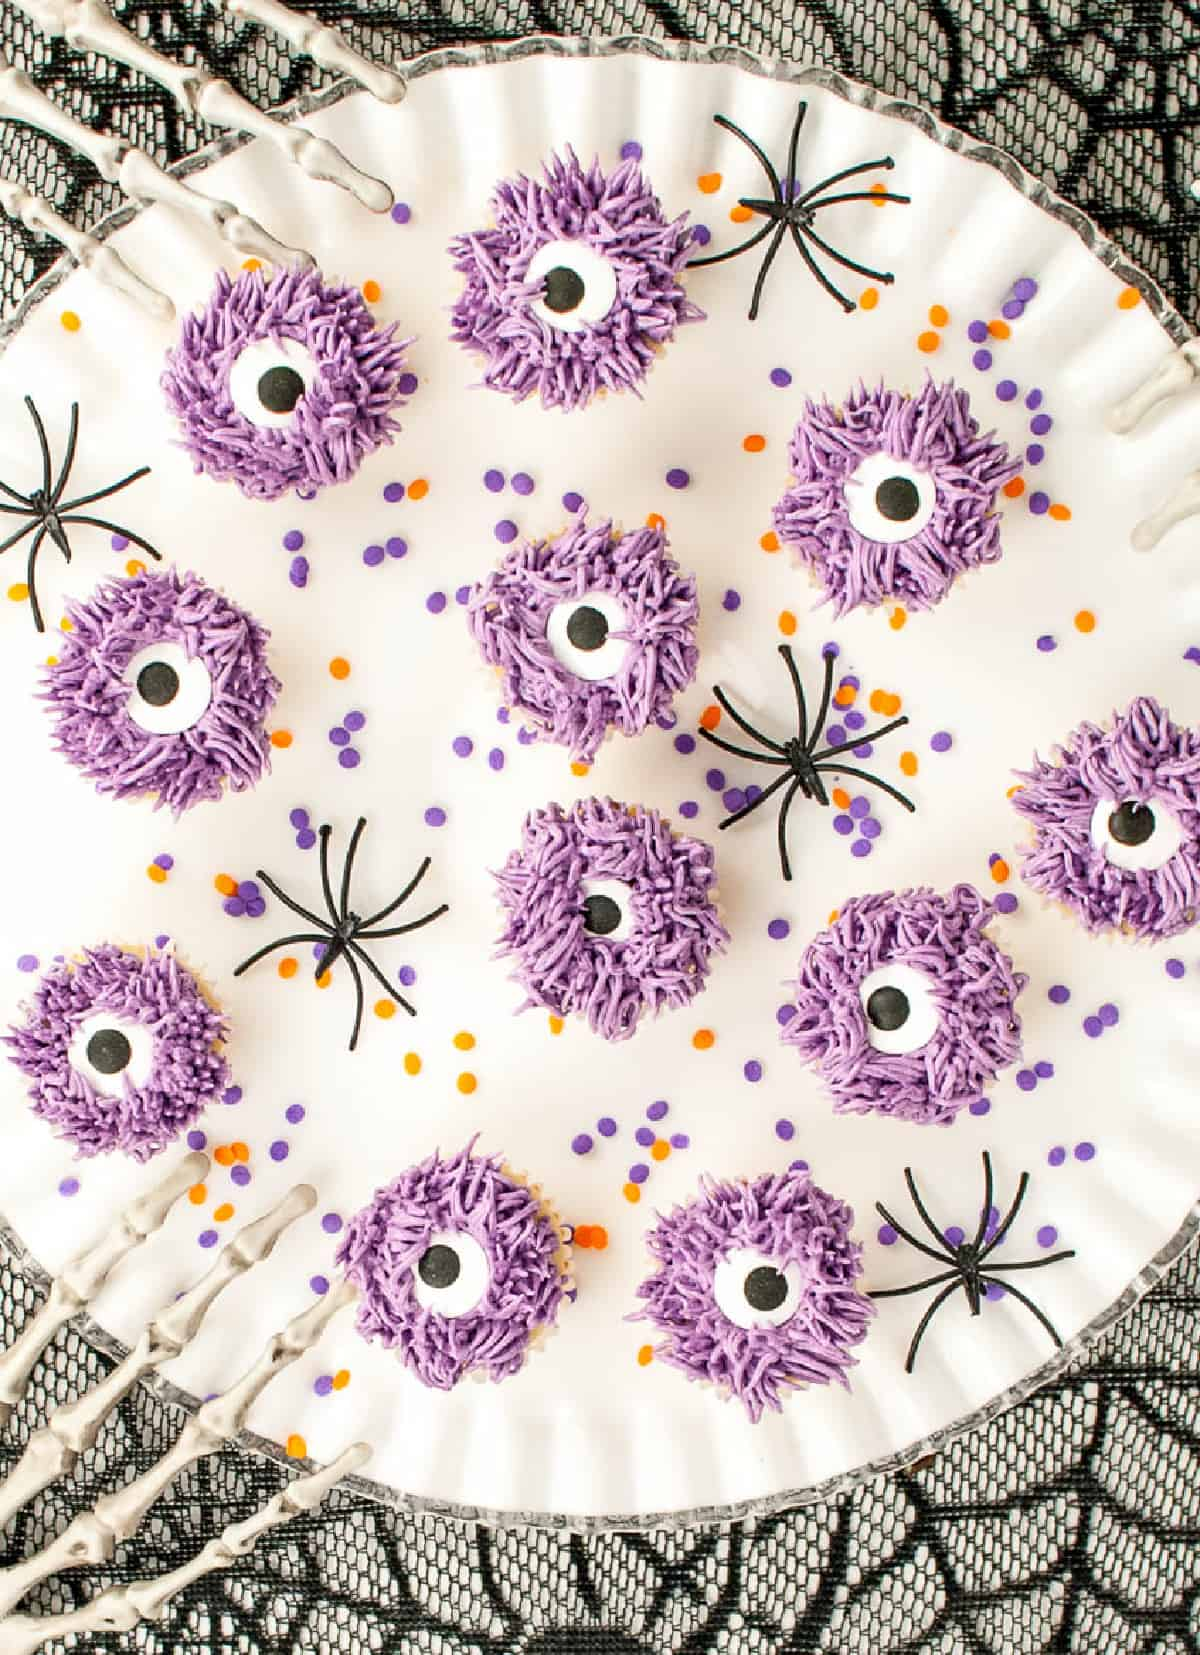 Purple monster cupcakes placed on a white platter with plastic spider scattered on the platter.